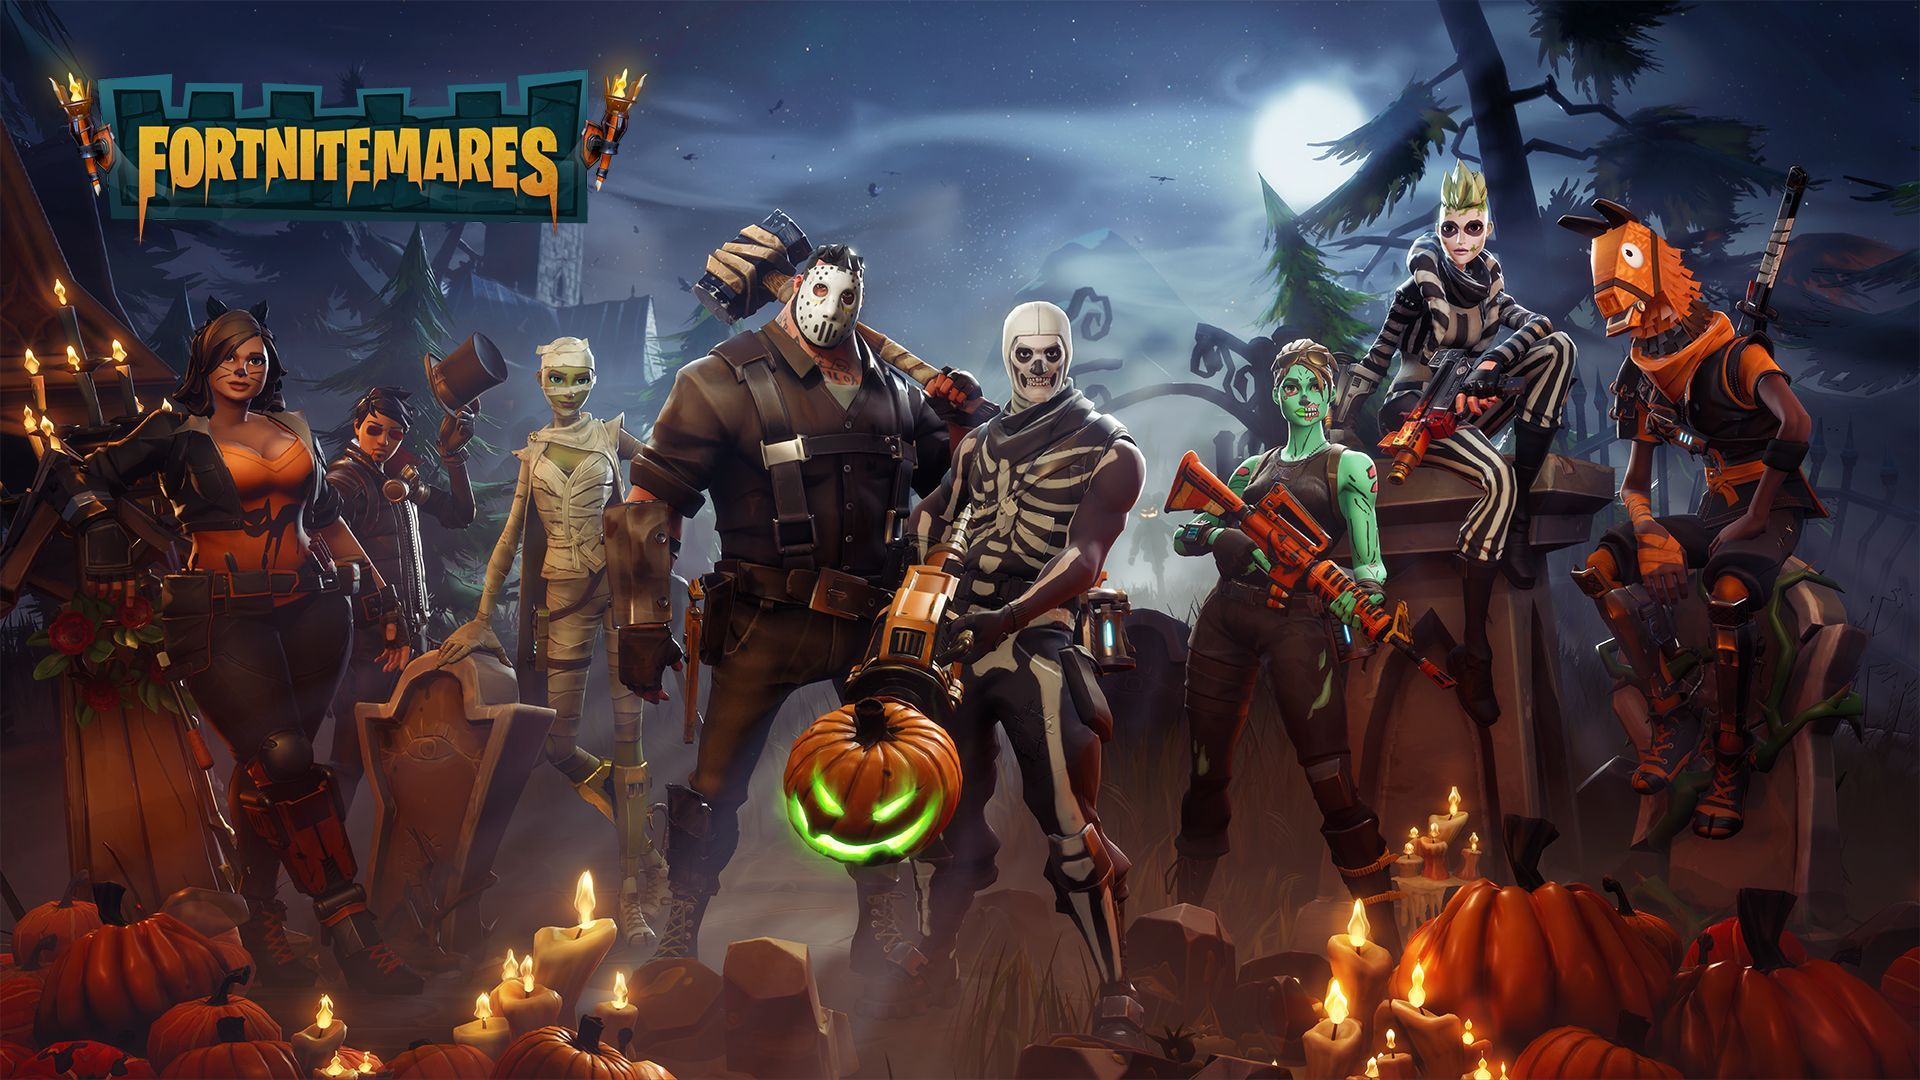 Epic Fortnite Wallpapers Top Free Epic Fortnite Backgrounds Wallpaperaccess